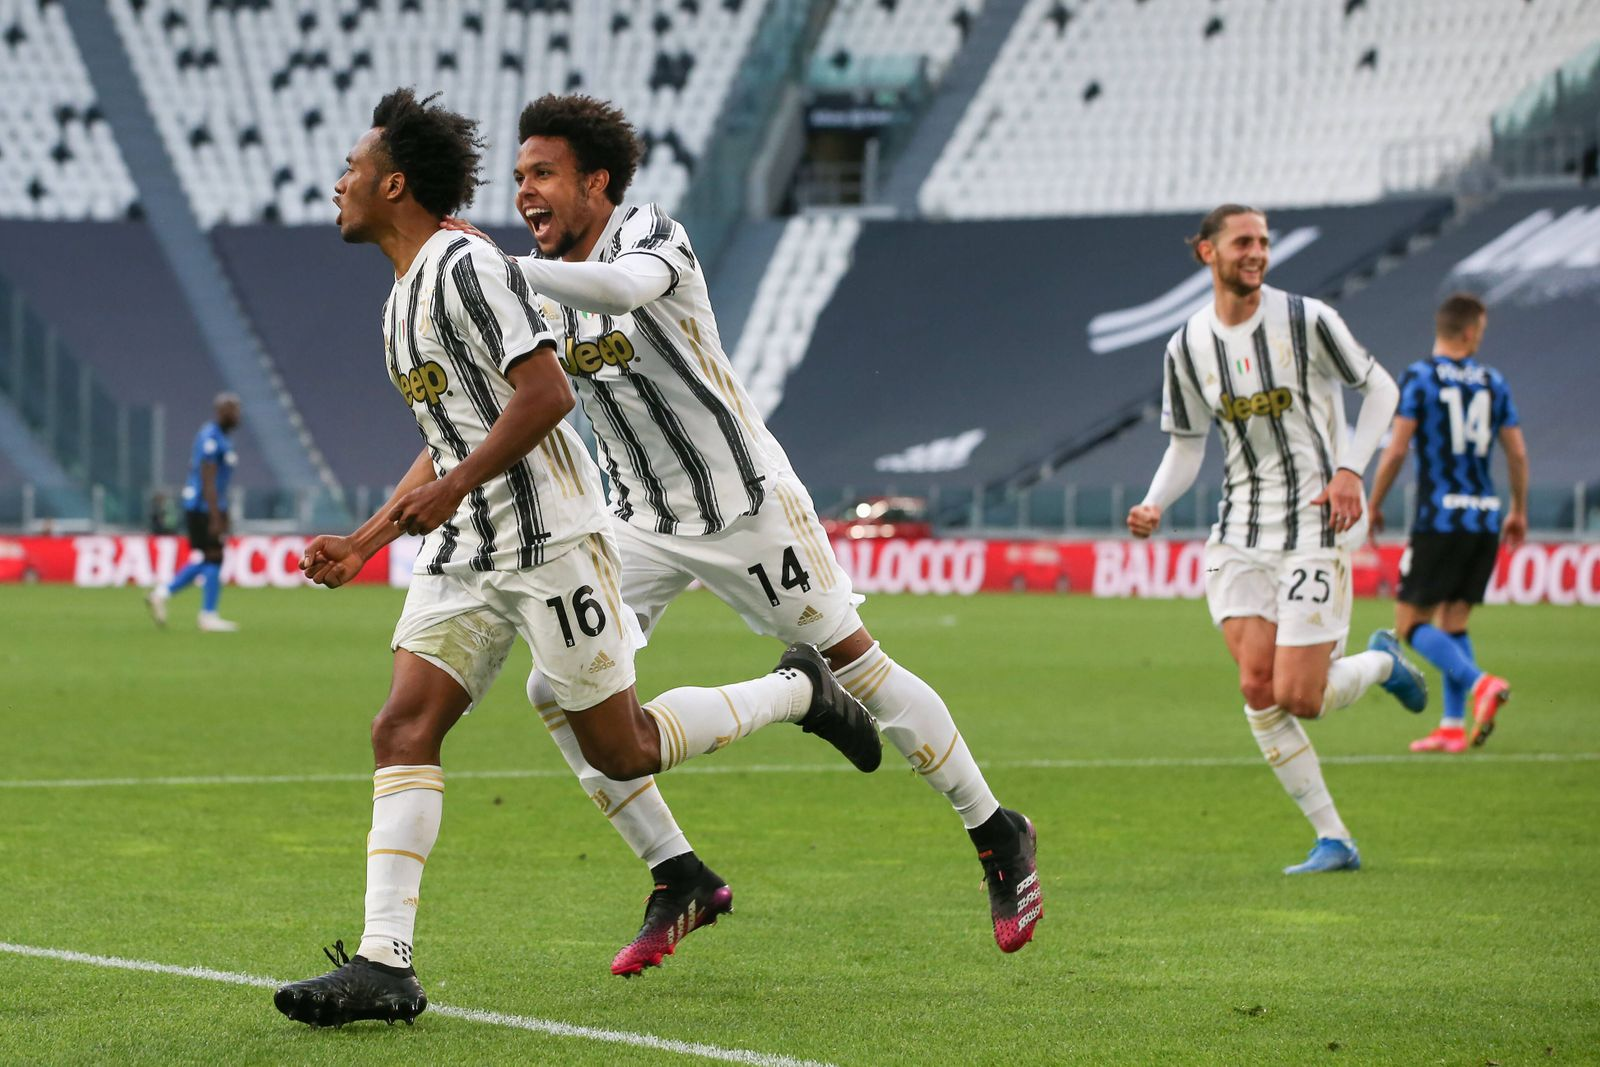 Turin, Italy, 15th May 2021. Juan Cuadrado of Juventus celebrates after scoring a late penalty to give the side a 3-2 vi